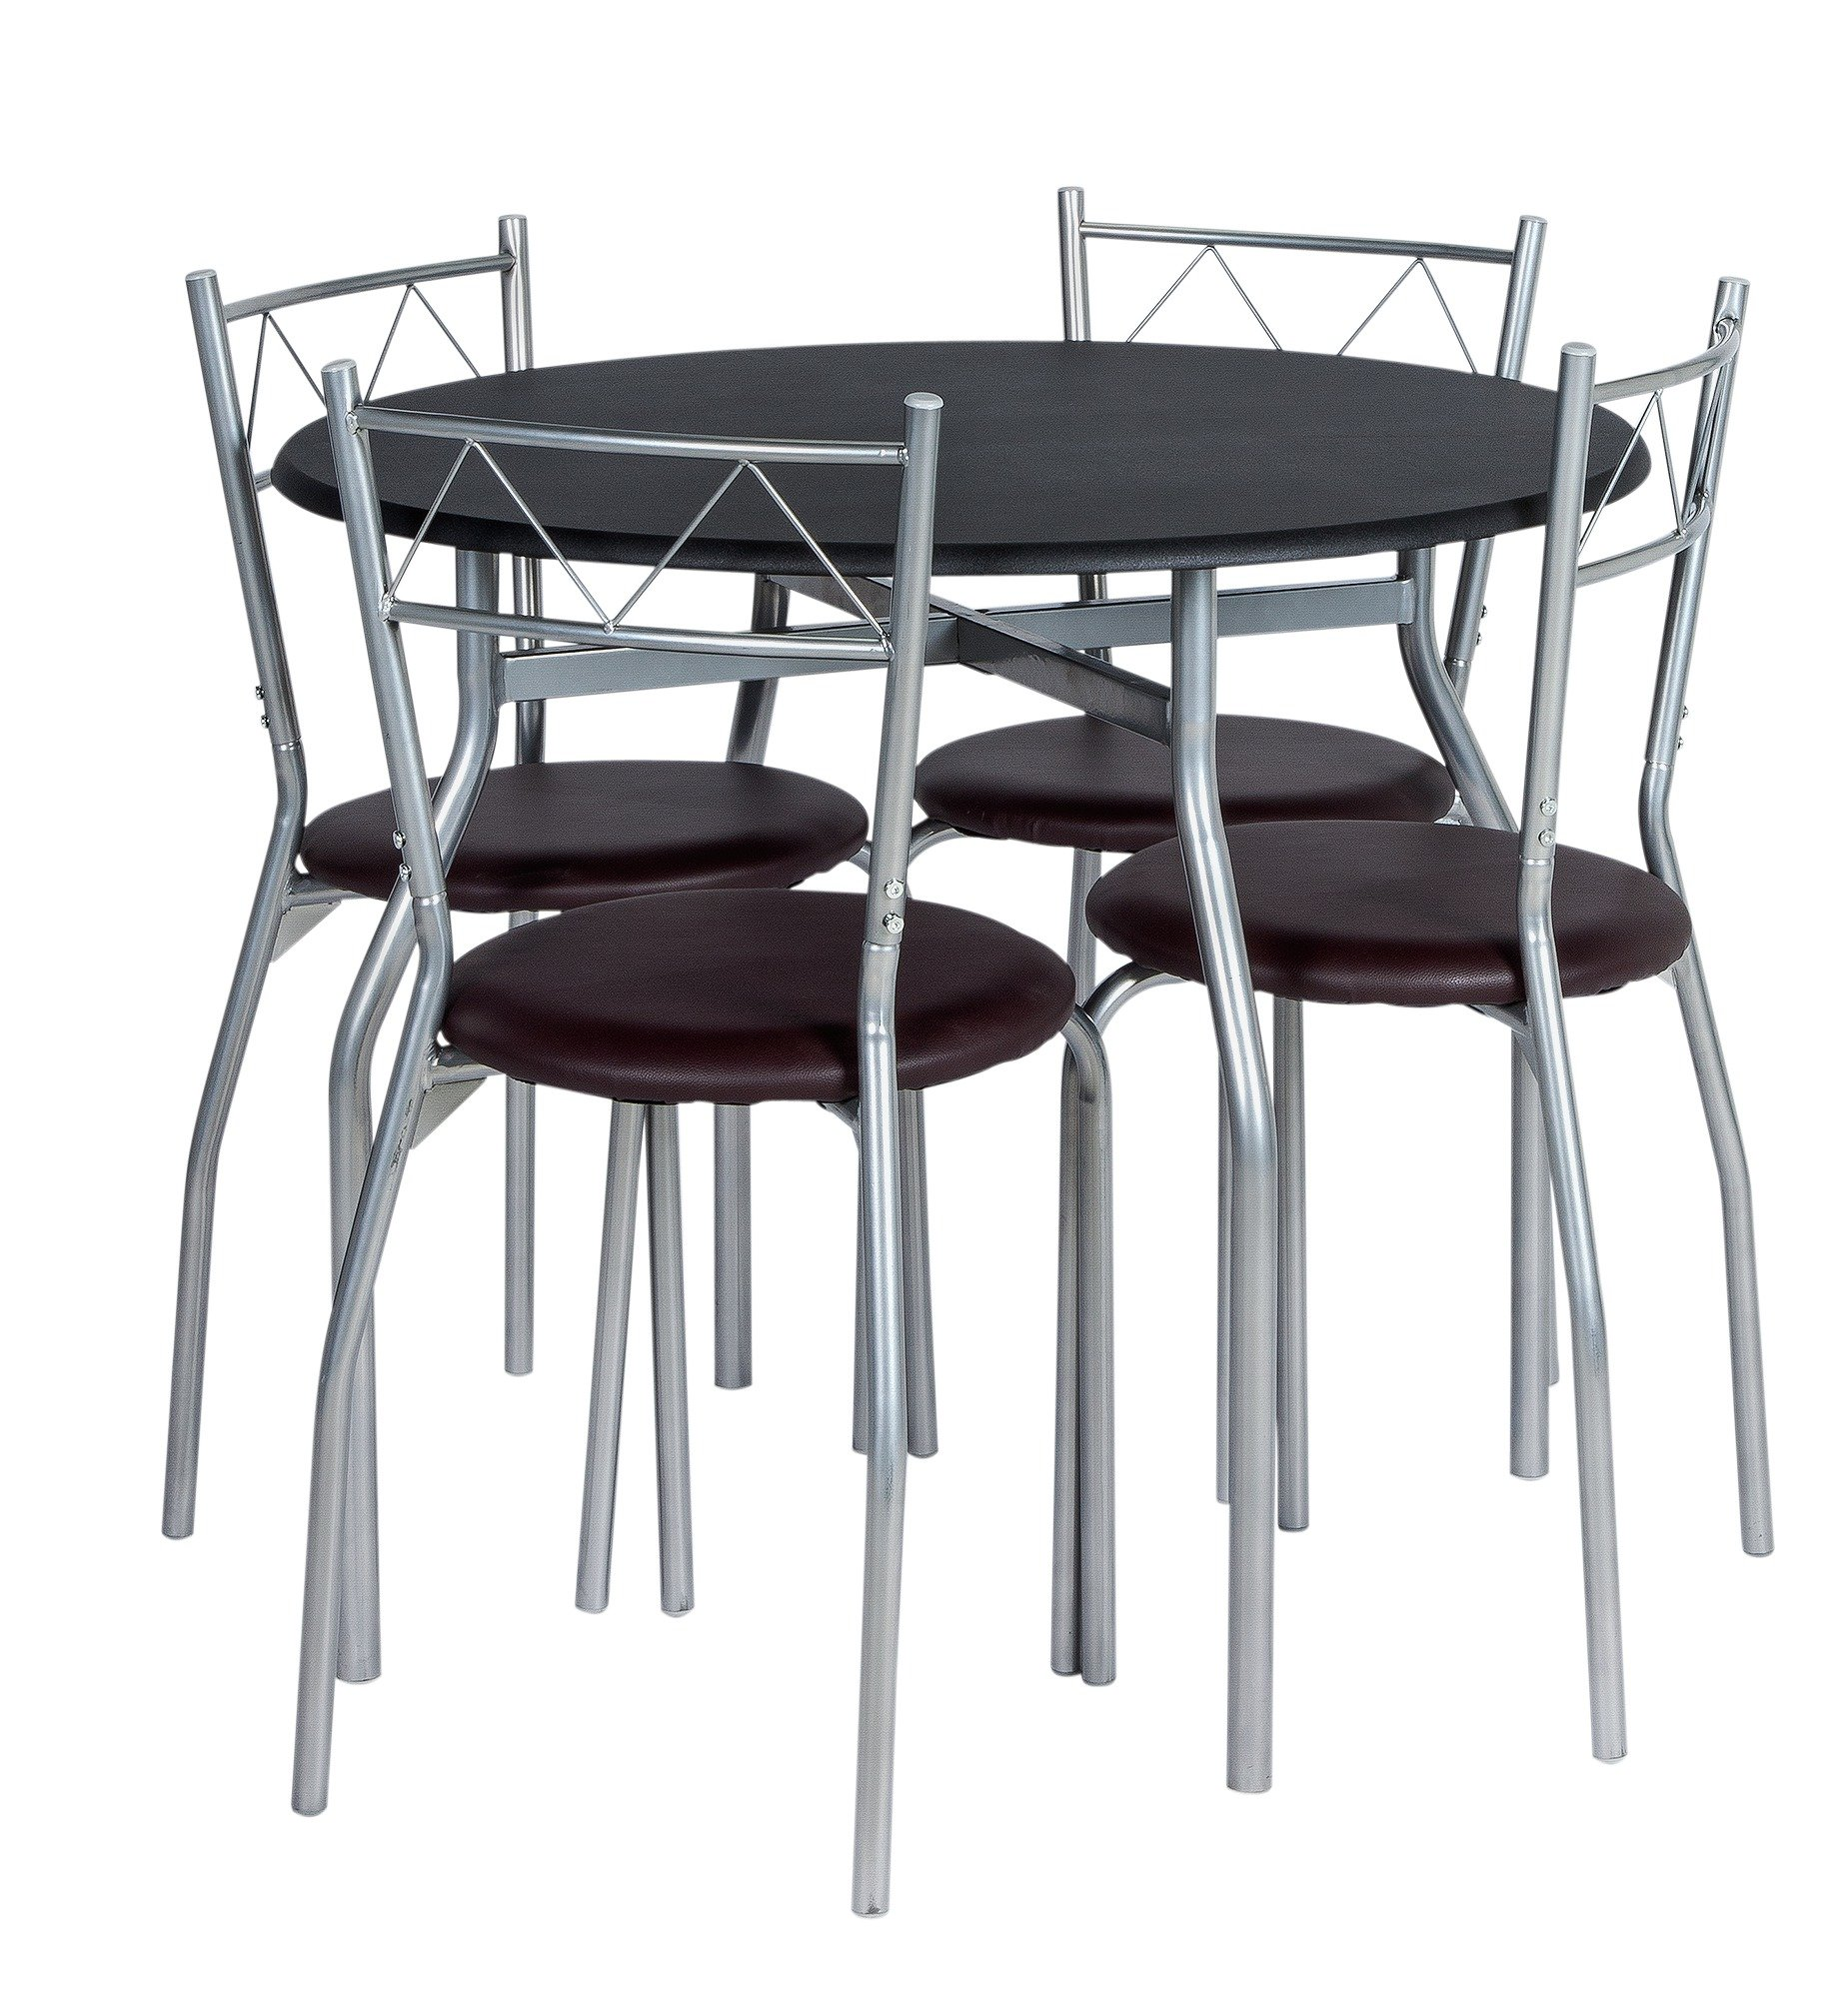 Argos Small Round Kitchen Table And Chairs: HOME Oslo Round Dining Table & 4 Chairs